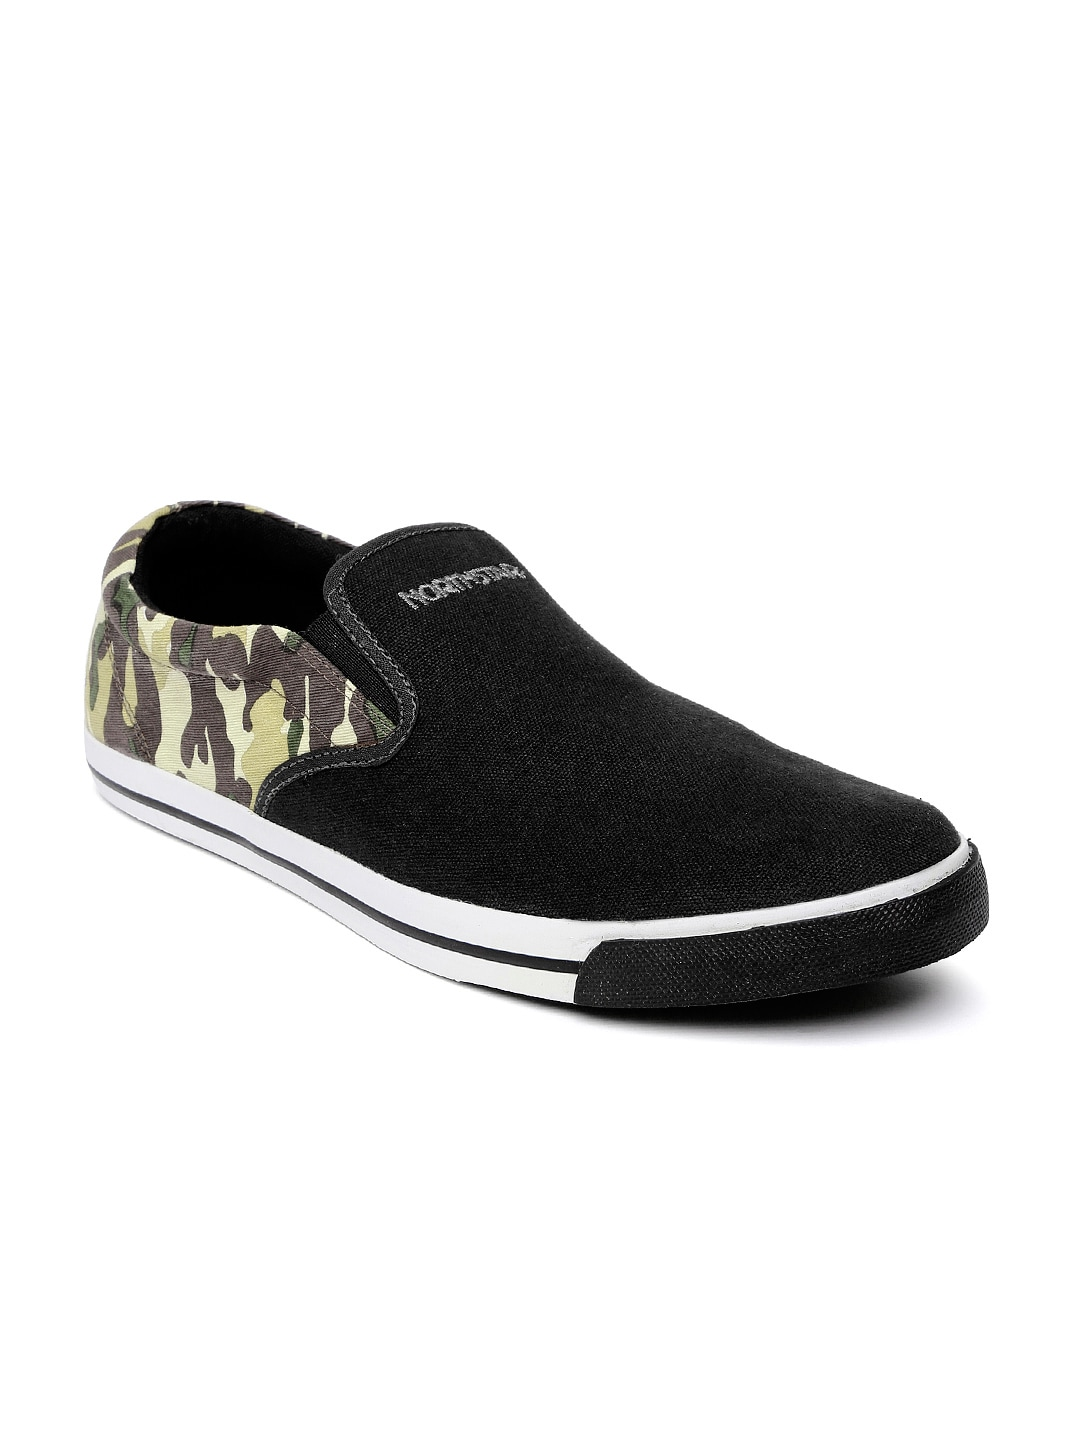 Men North Star Casual Shoes - Buy Men North Star Casual Shoes online in India